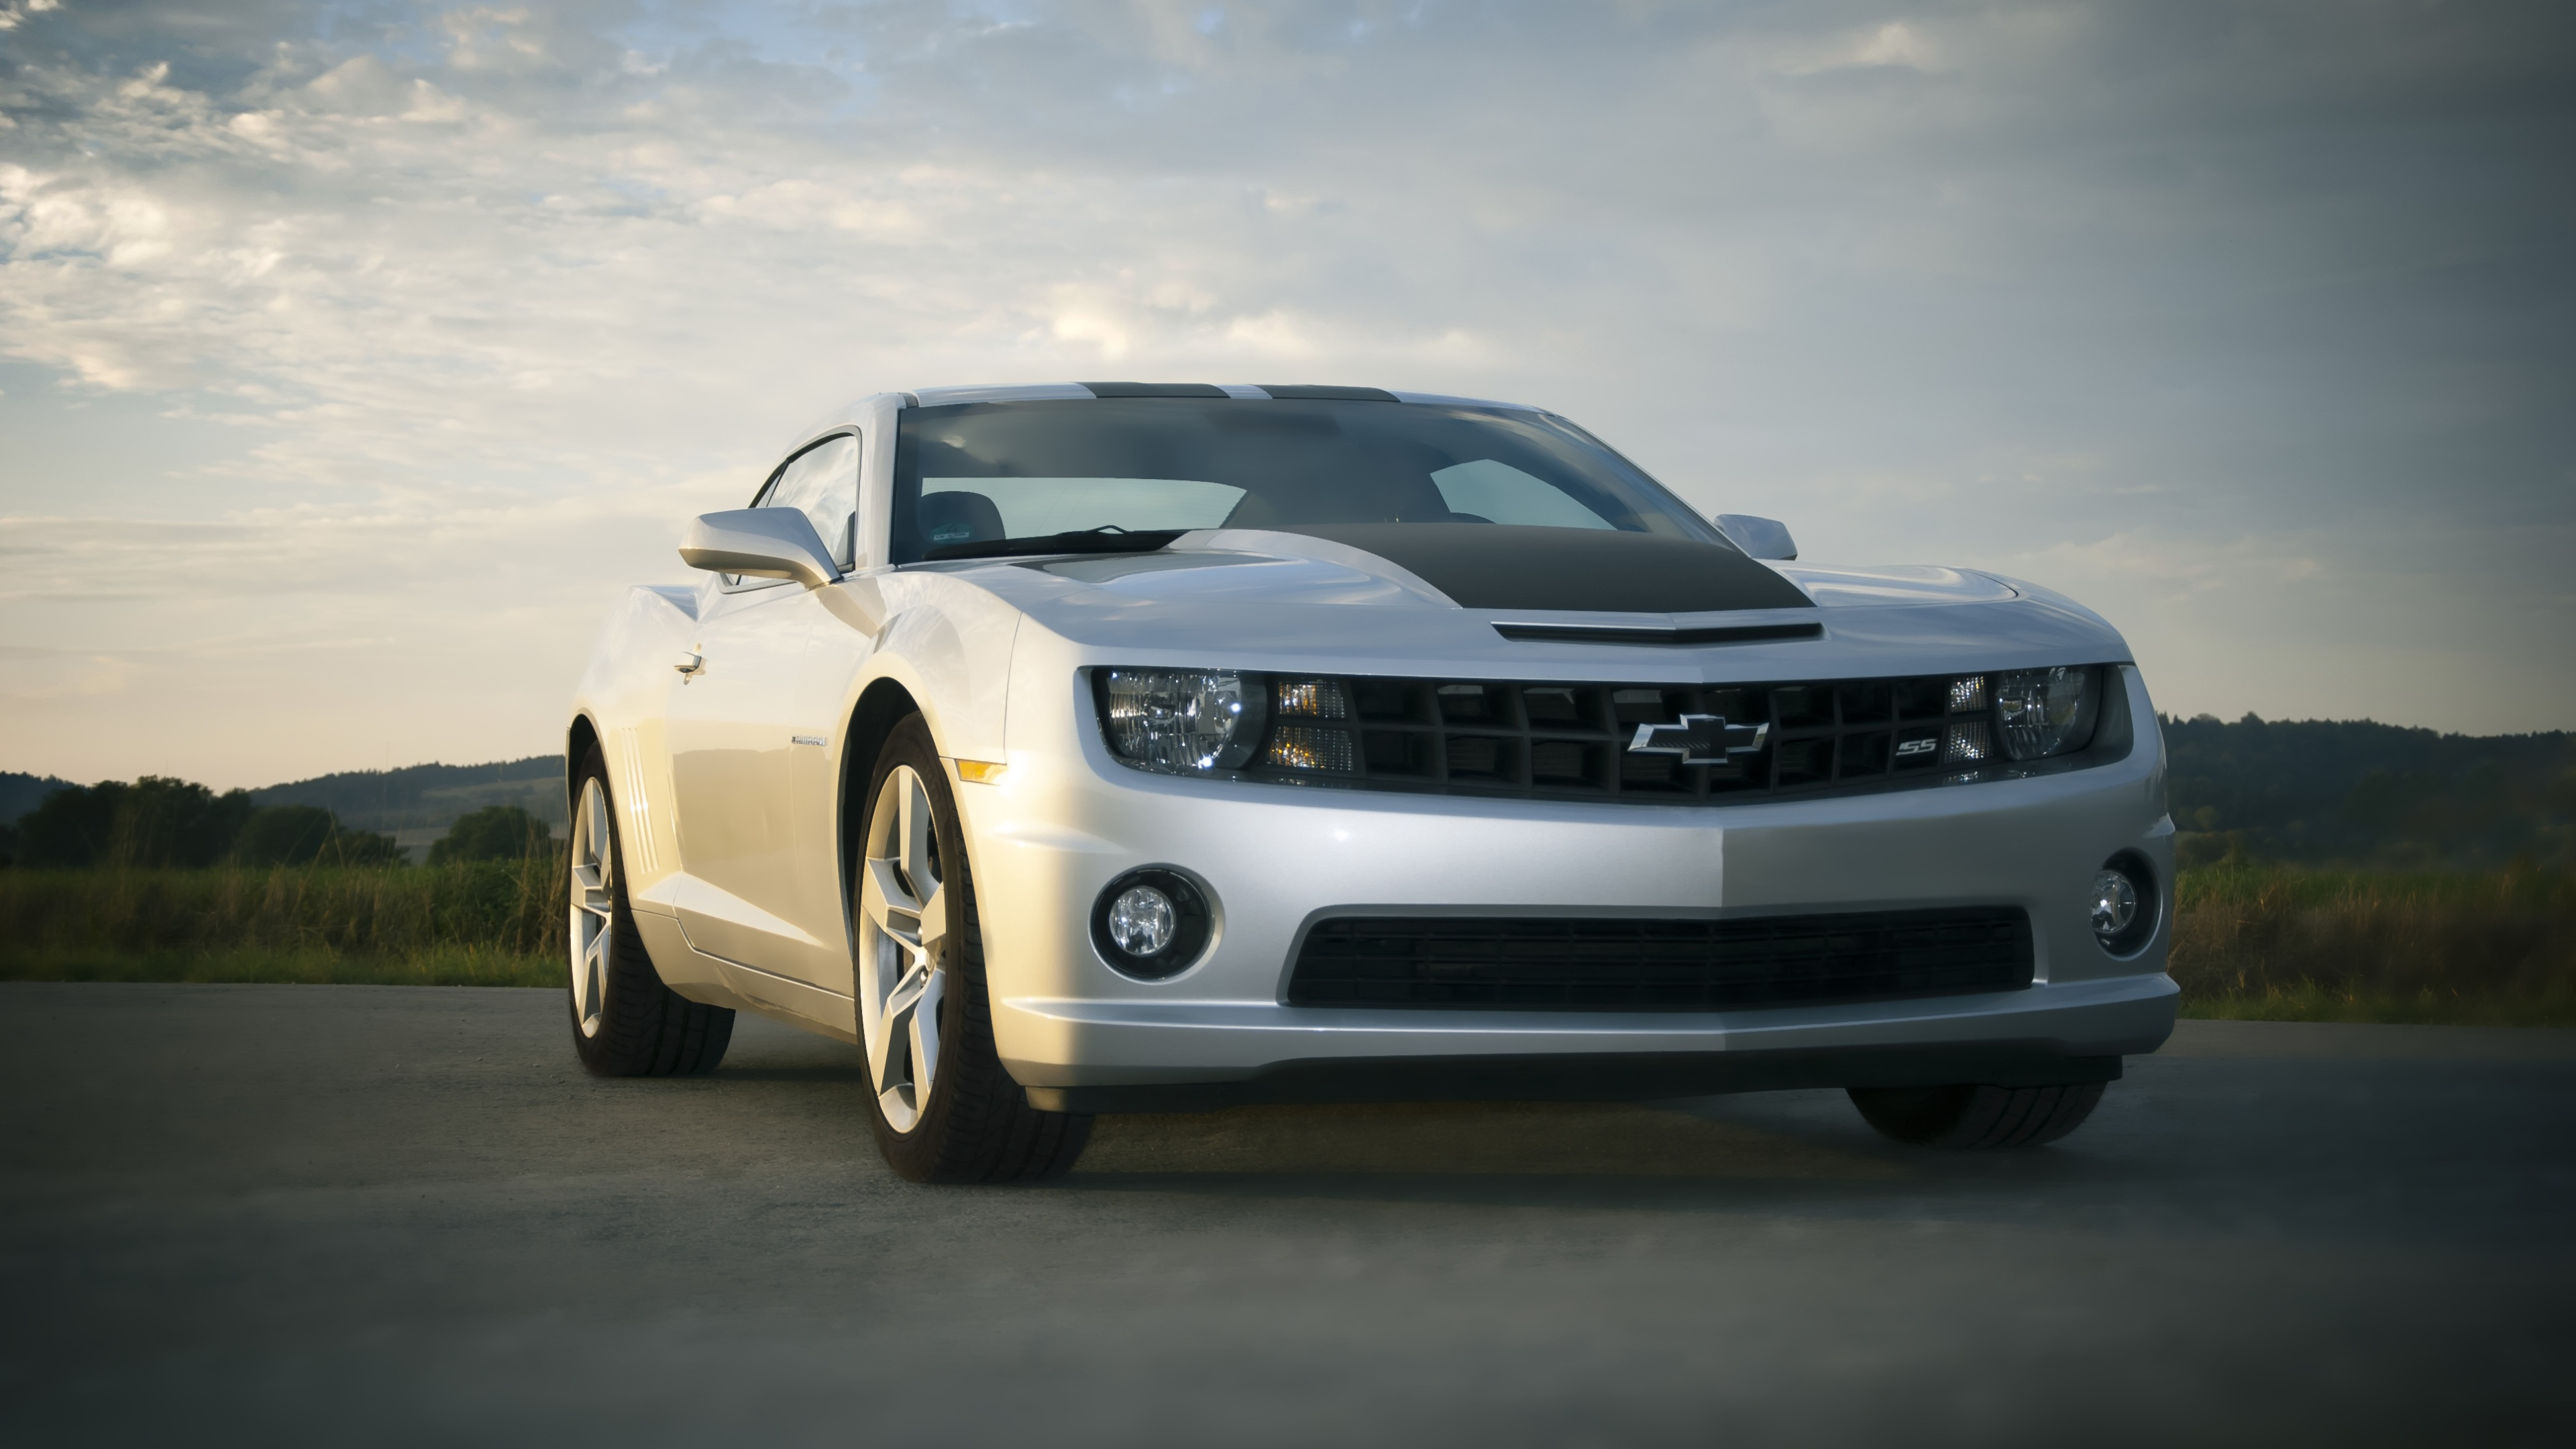 Car wallpapers best 4k and hd wallpapers with cars and - Car 4k wallpaper ...